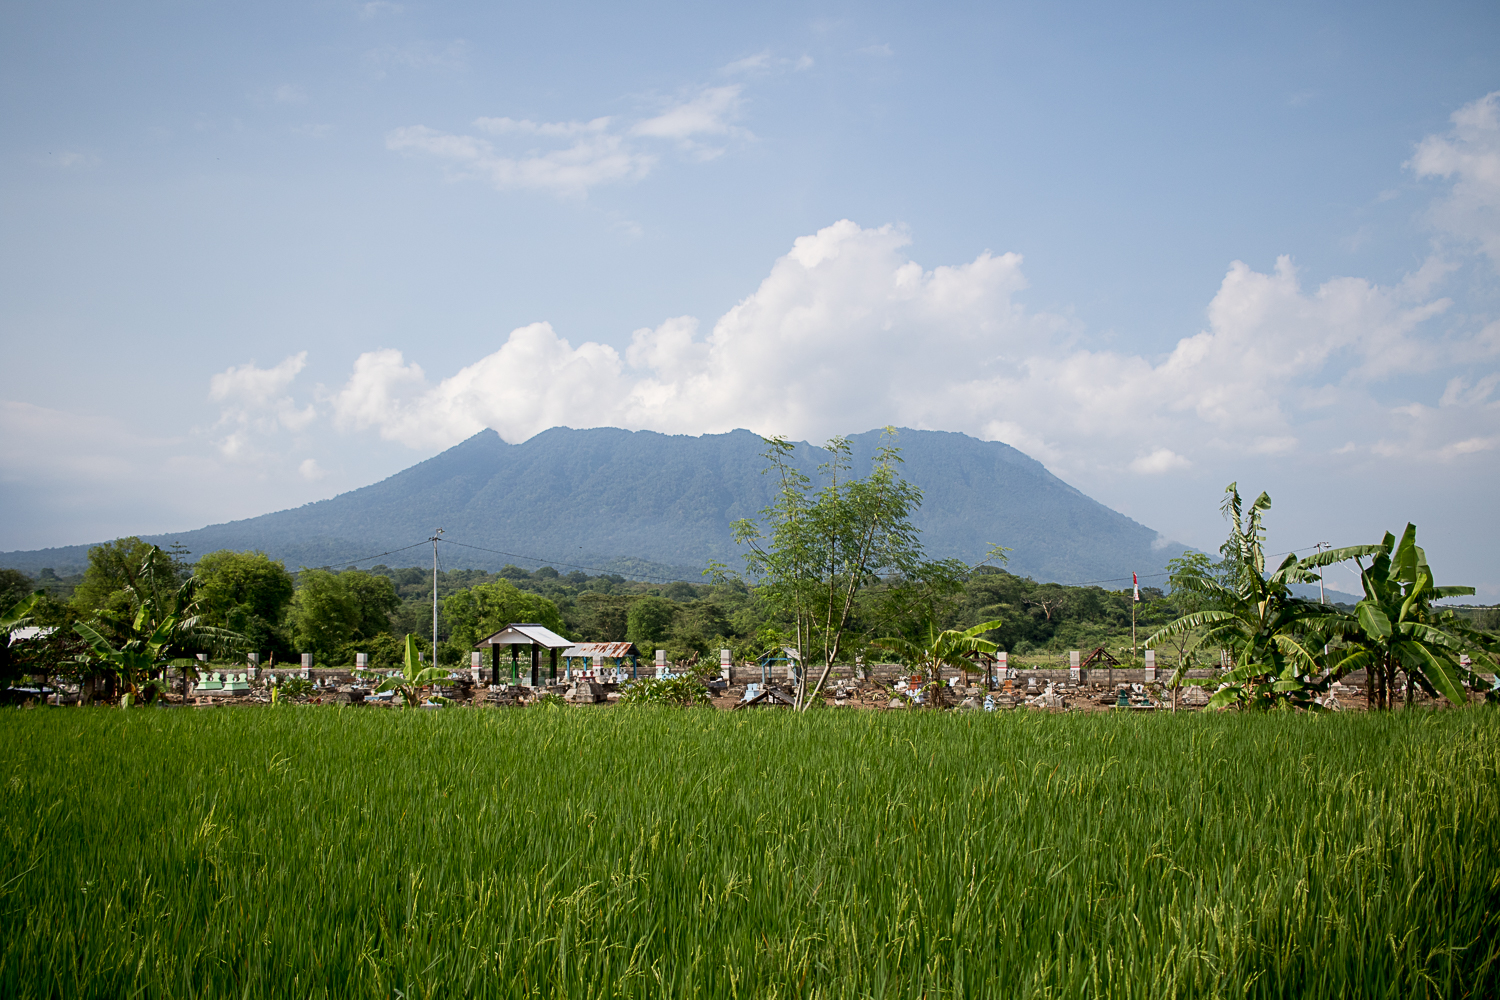 Cemetery on the outskirts of Baluran National Park